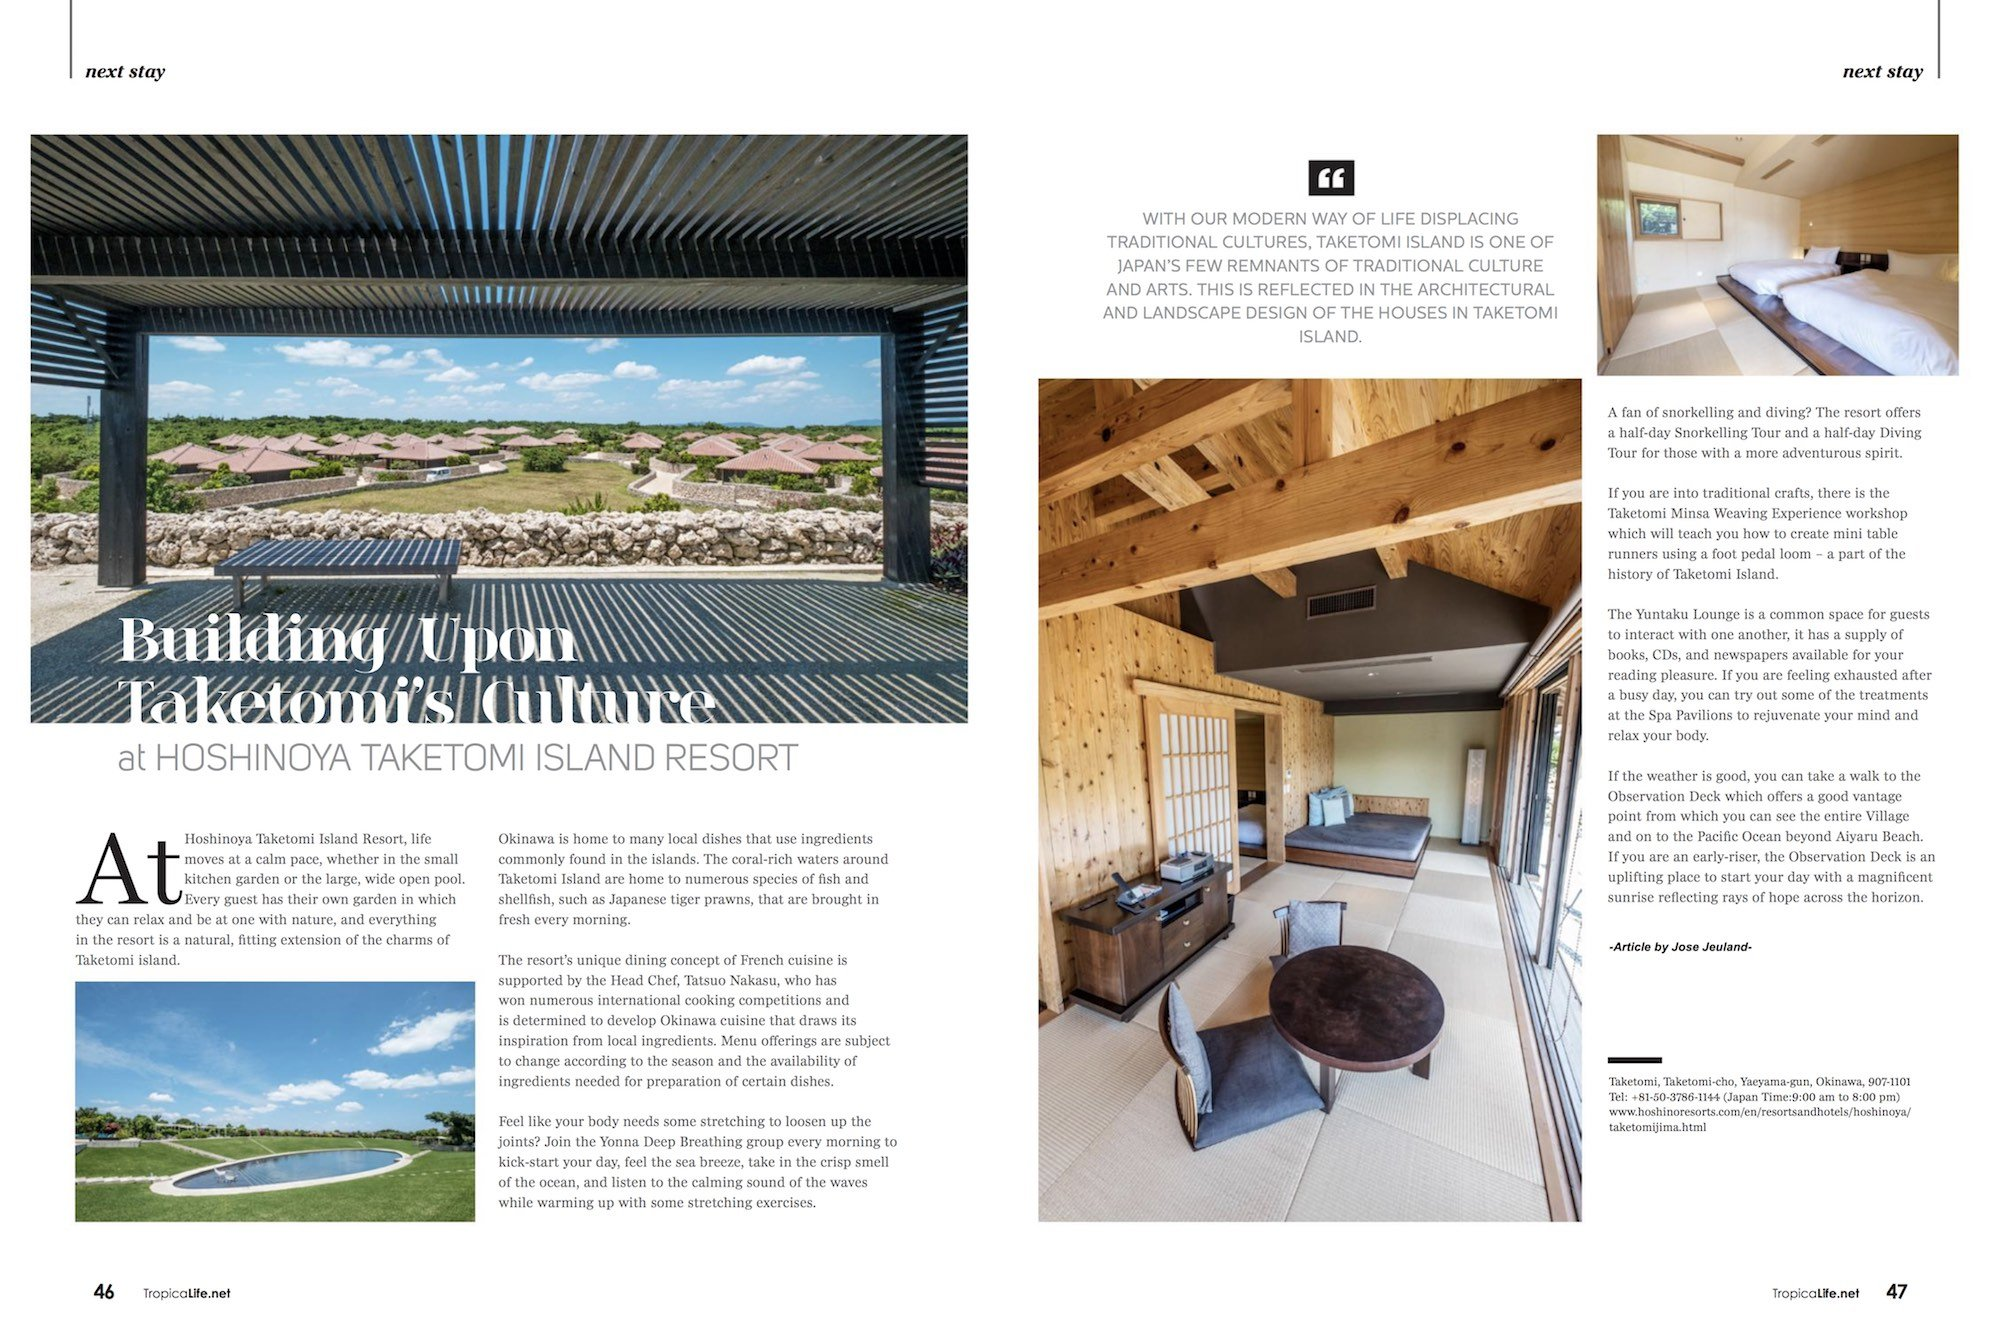 Tropical Life Magazine Travel Journey Okinawa Japan Jose Jeuland HOSHINOYA TAKETOMI ISLAND RESORT photographer Singapore